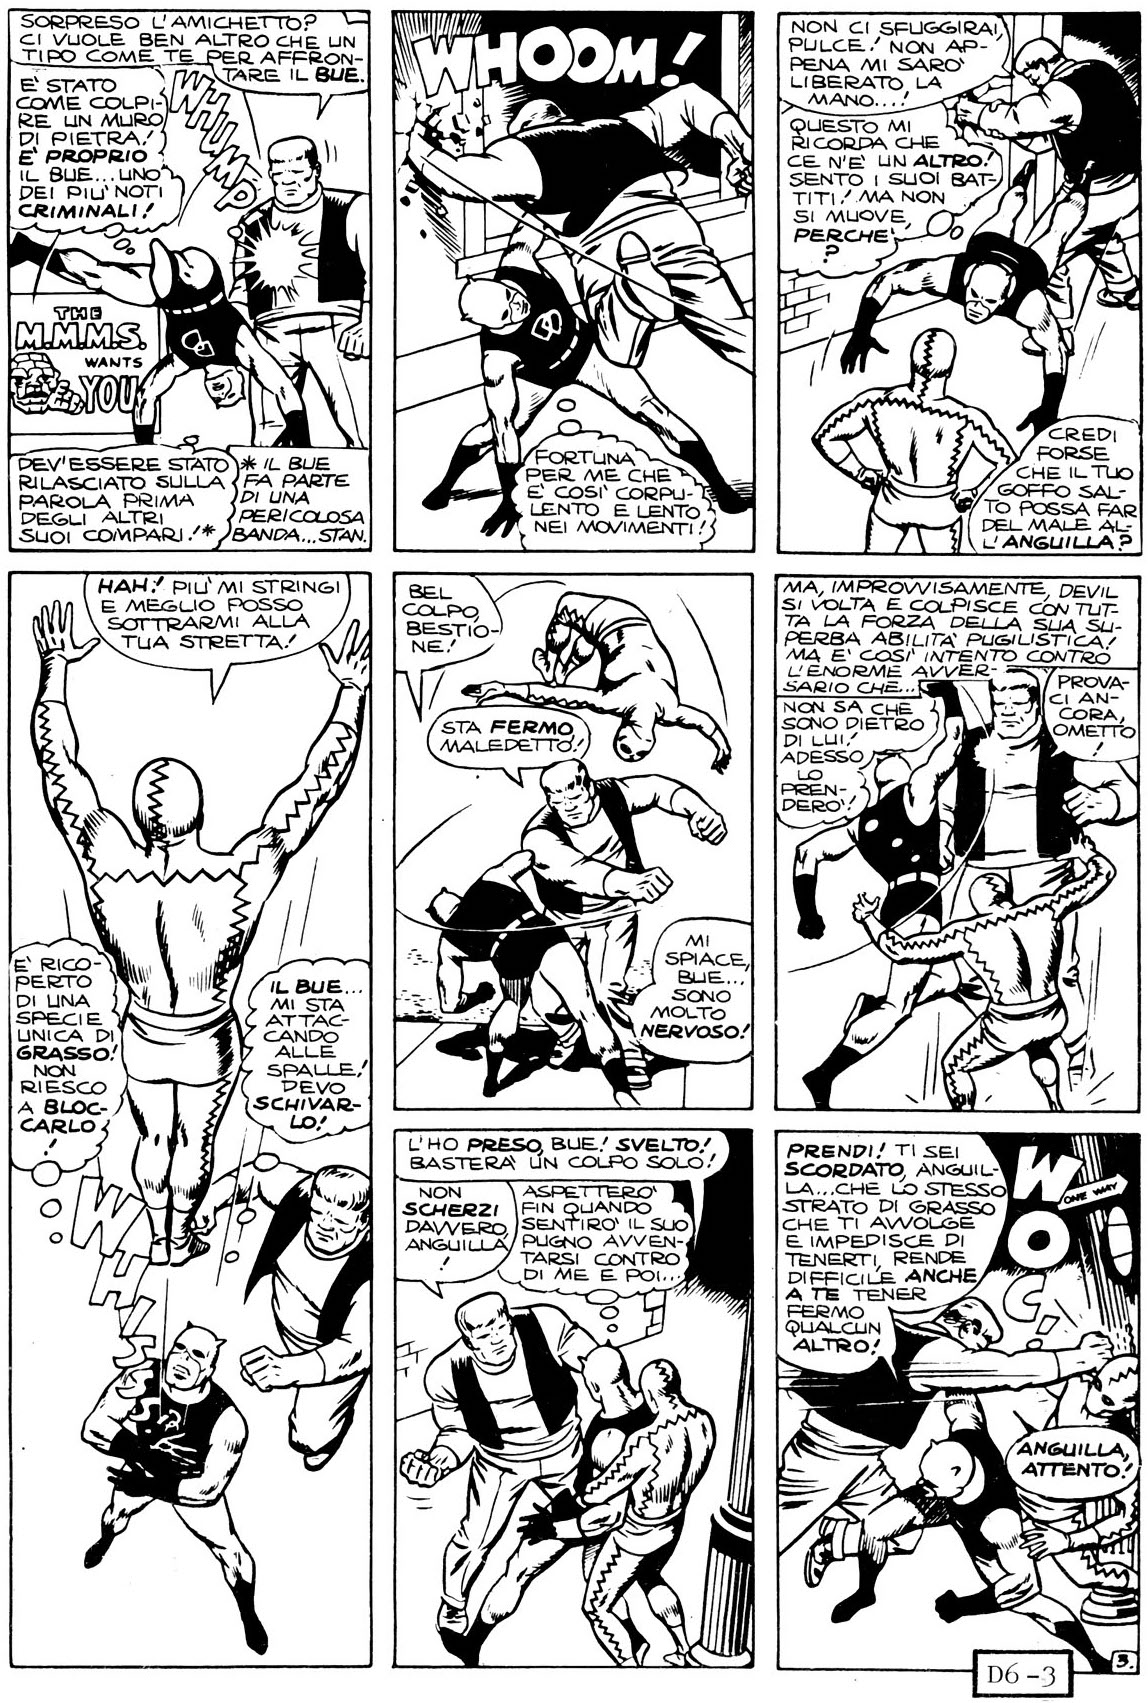 WALLY WOOD DISEGNA DEVIL E LITIGA CON STAN LEE